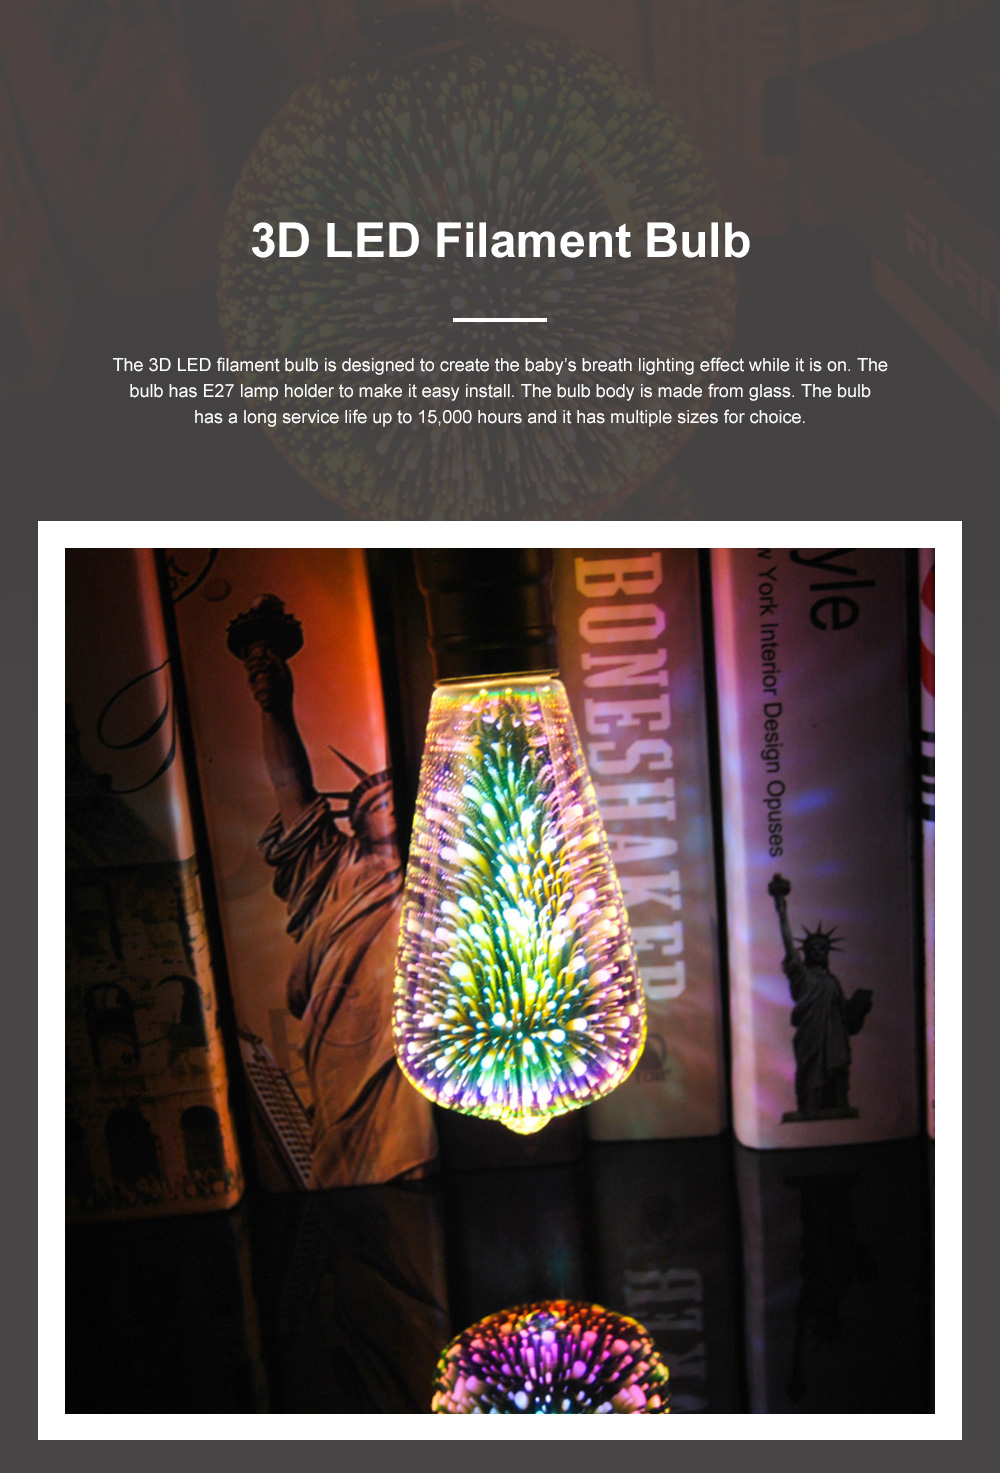 A60 ST64 G80 G95 G125 Three-dimensional LED Filament Bulb for Special Lighting Effects E27 Lamp Holder Bulb Glass Baby's Breath Effect Bulb 0